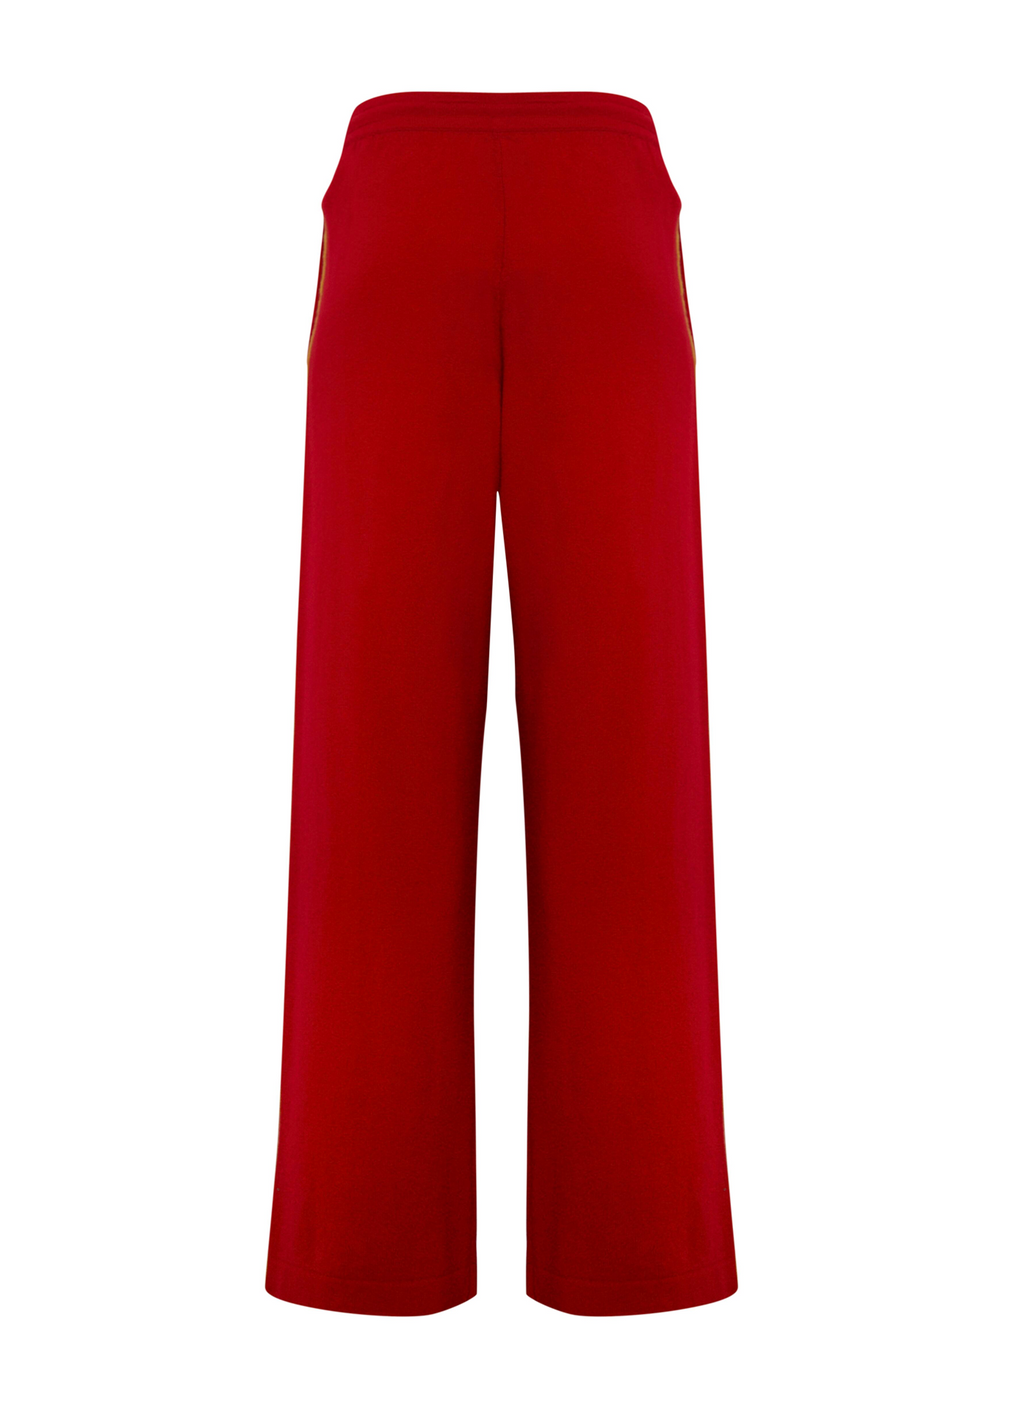 Sagecoin Cashmere Bottoms Red